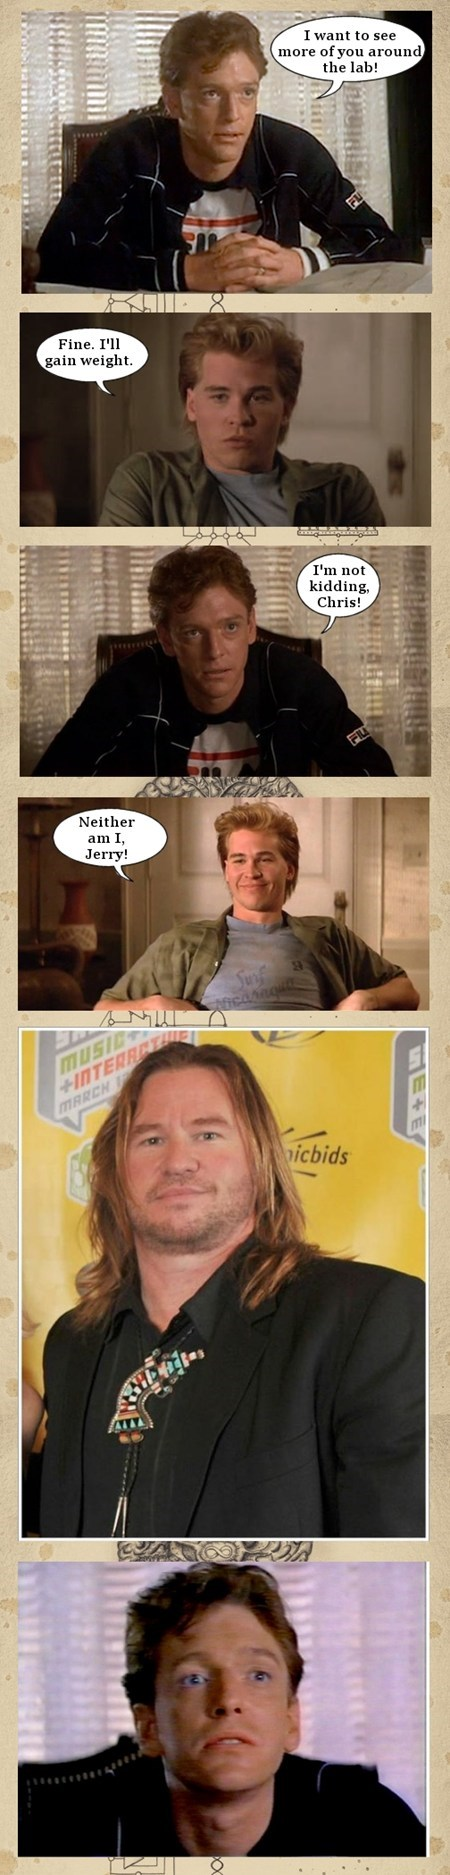 real geniuses puns val kilmer funny - 7833964288